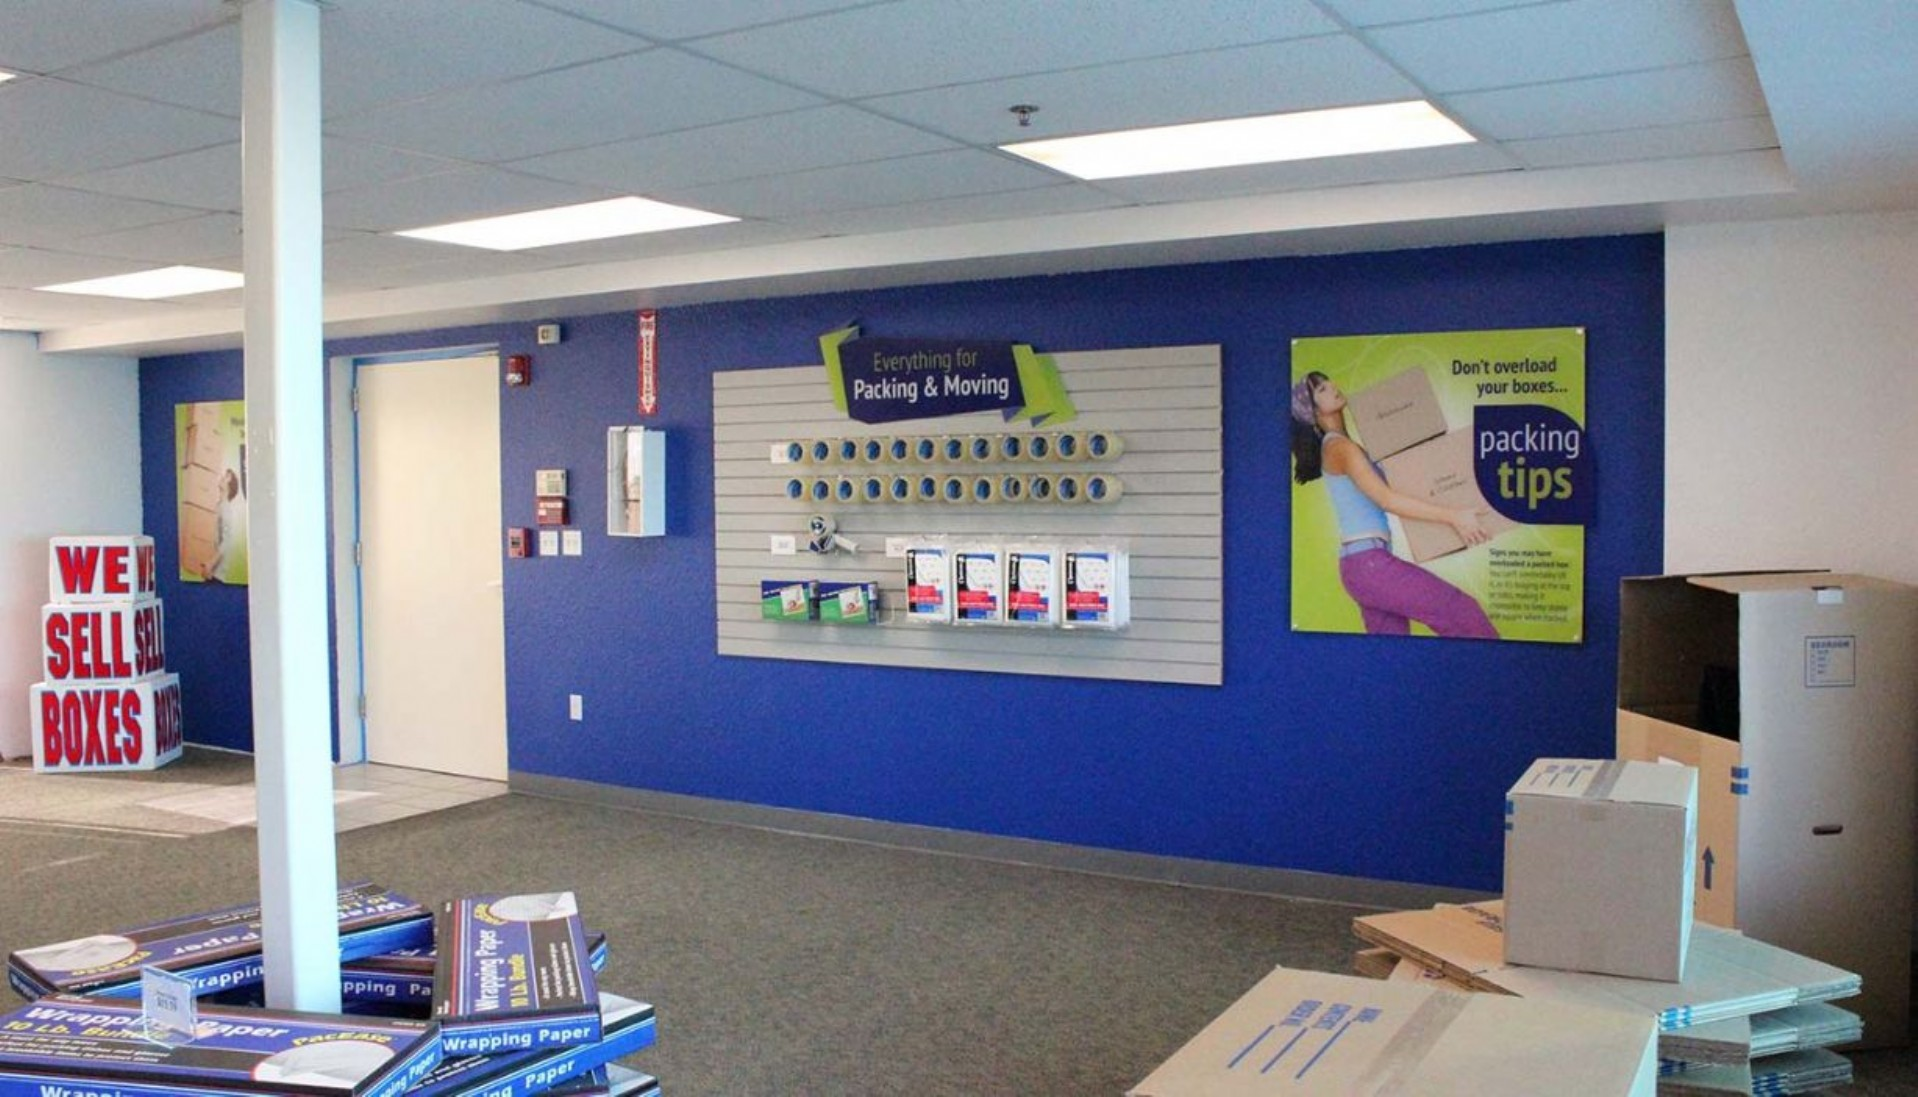 Price Self Storage Pacific Beach rental office and packing and moving supplies merchandise display wall